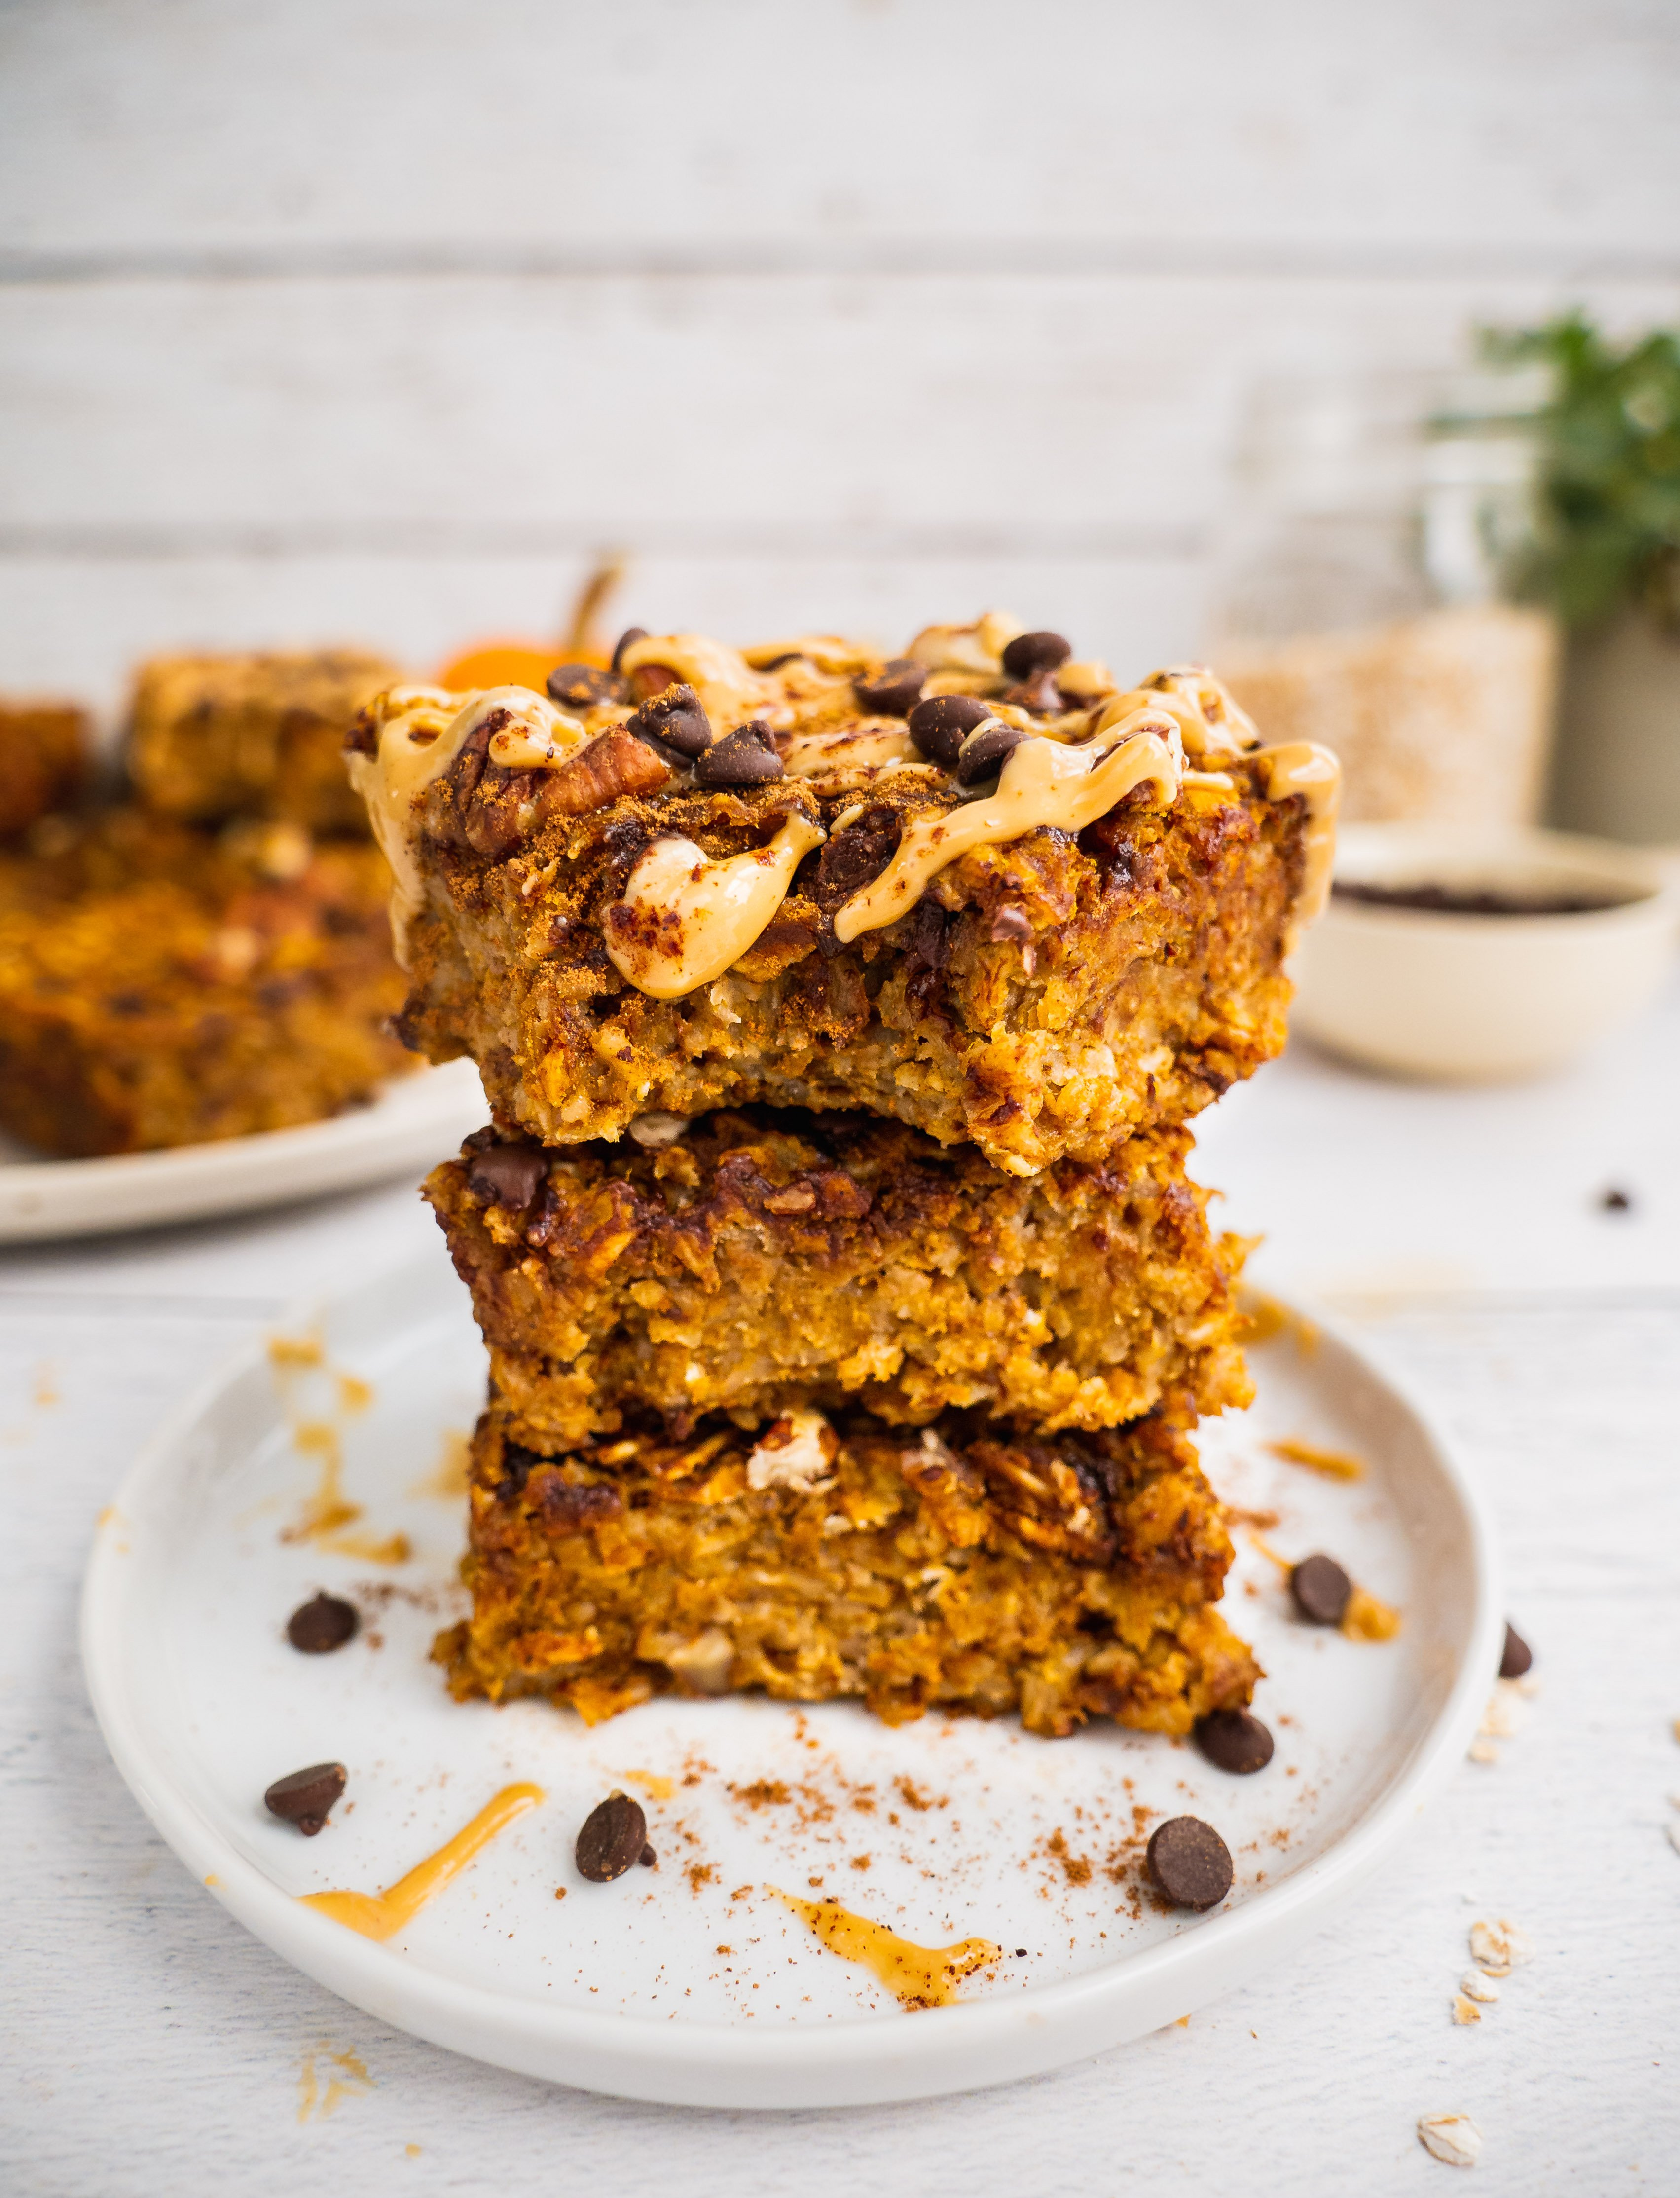 A stack of healthy pumpkin breakfast oatmeal bars topped with peanut butter (optional) and chocolate chip. The top one has a bite. In the background, there are more bars, a couple pumpkins and a jar of gluten free rolled oats.